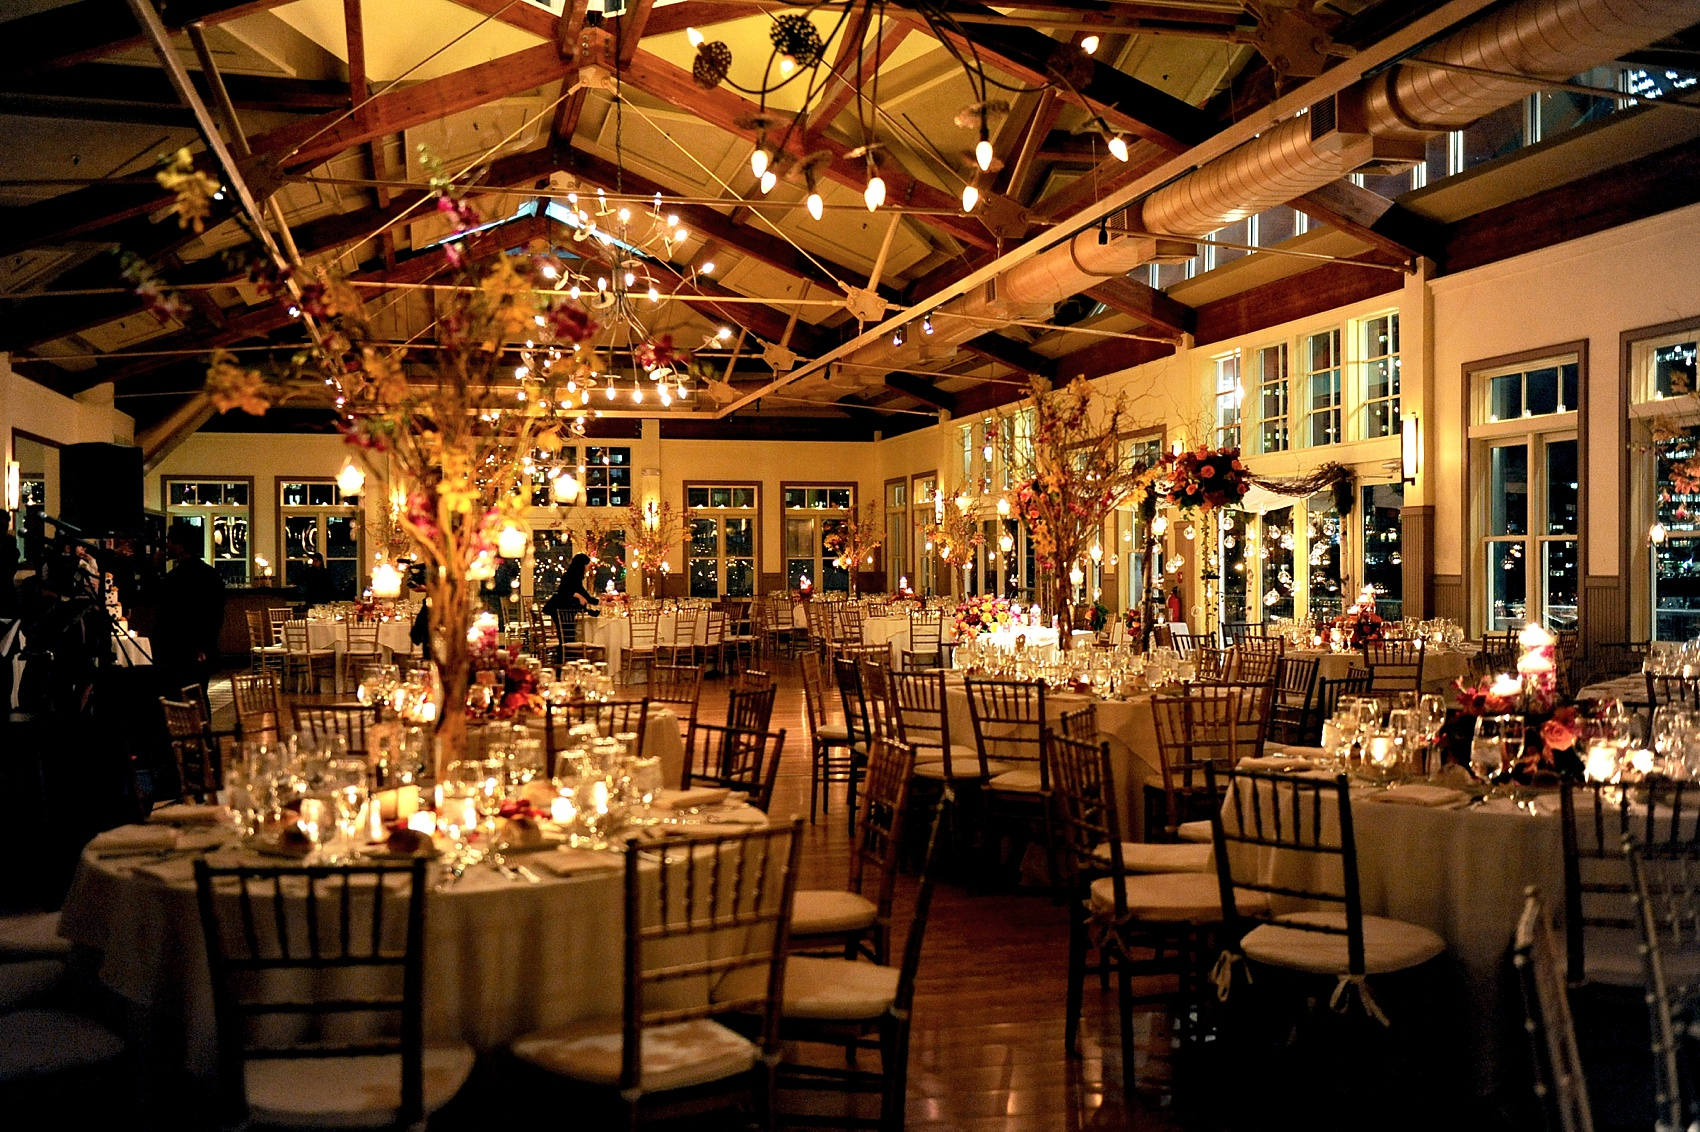 Photos Beautiful Night Time Reception Room Set Up, Complete With Candles,  Orchids And Branches At ...